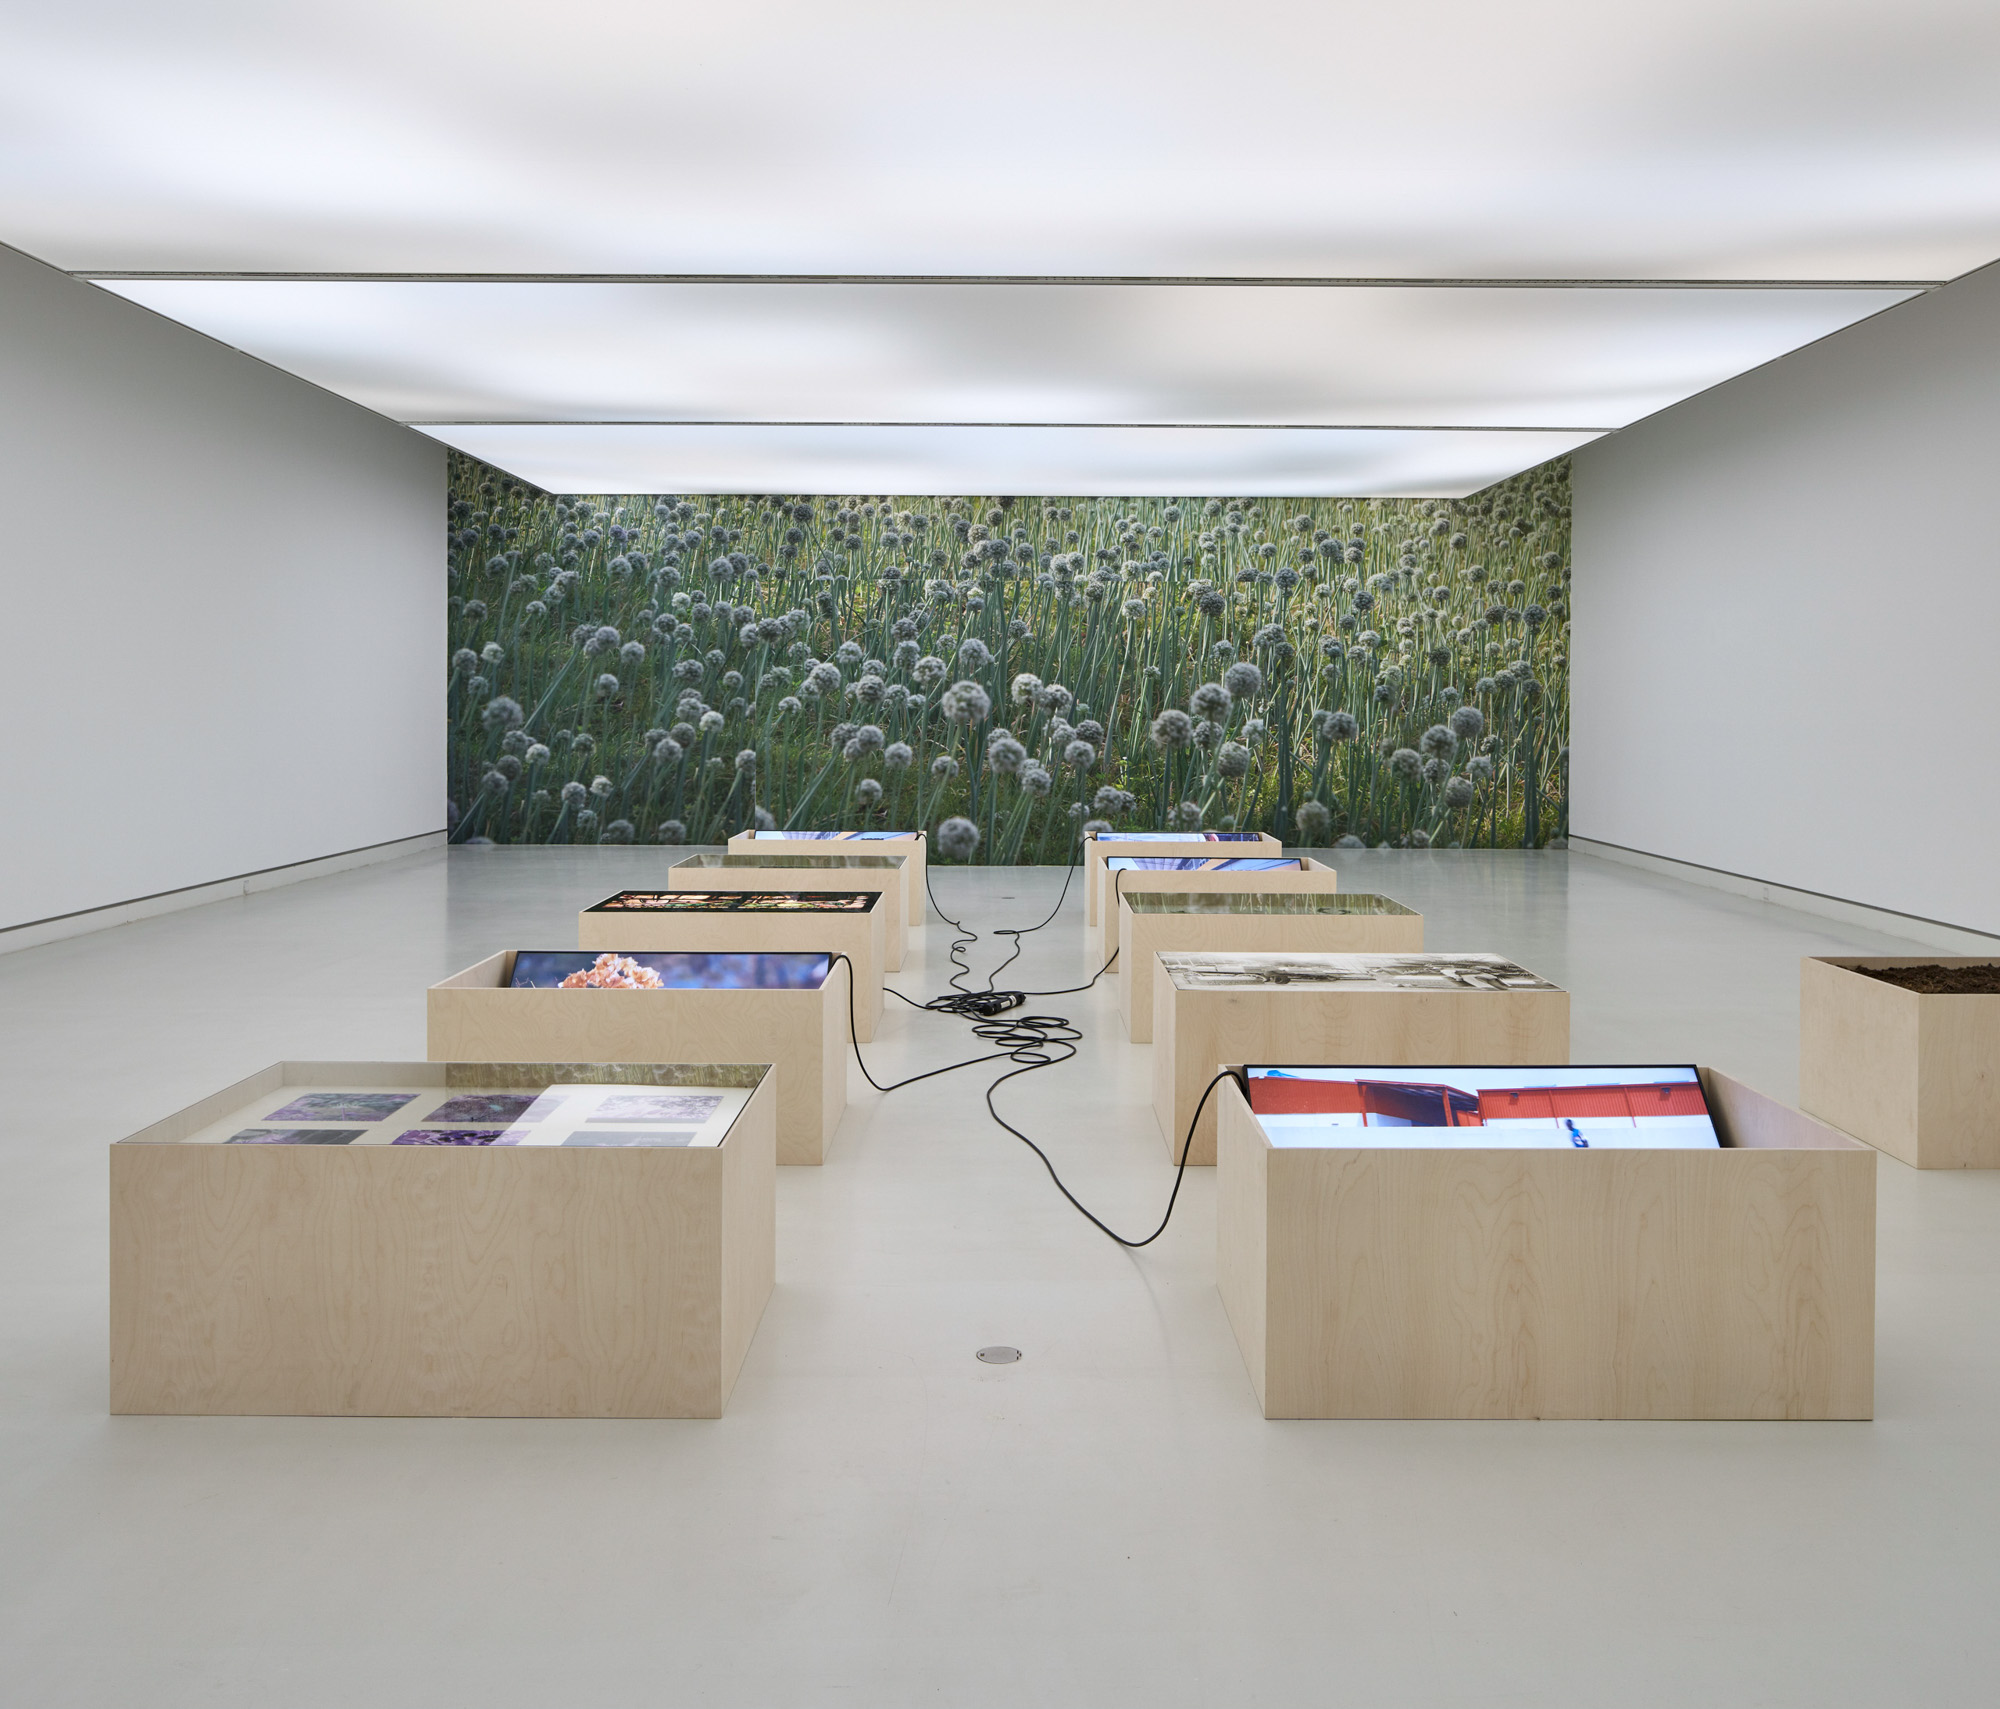 Conversing with Leaves at Kunsthalle Mainz